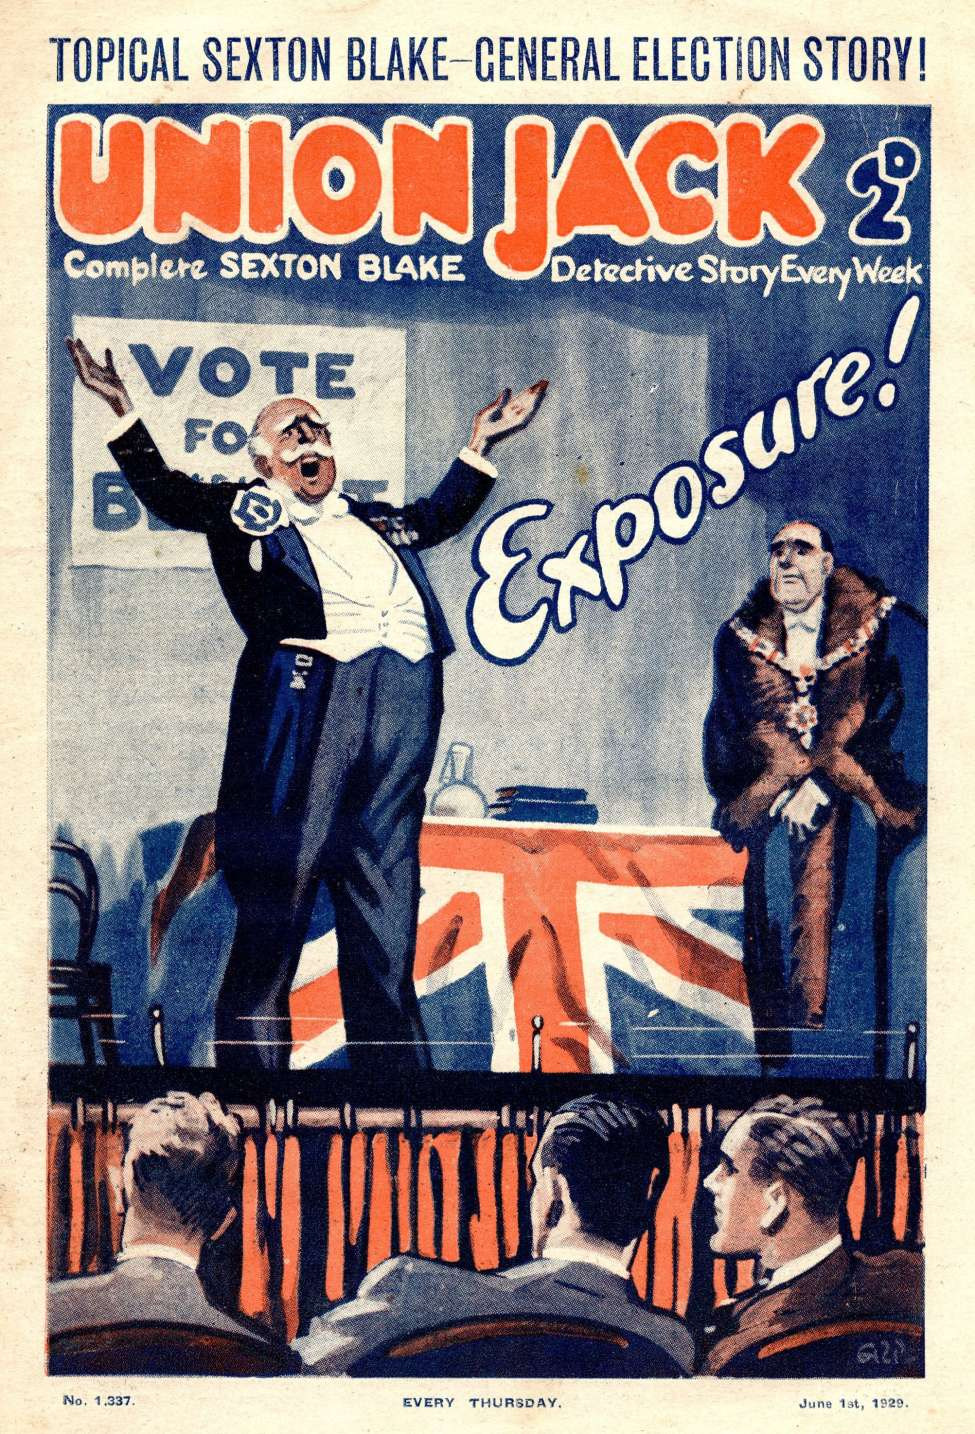 Comic Book Cover For Union Jack 1337 - Exposure!